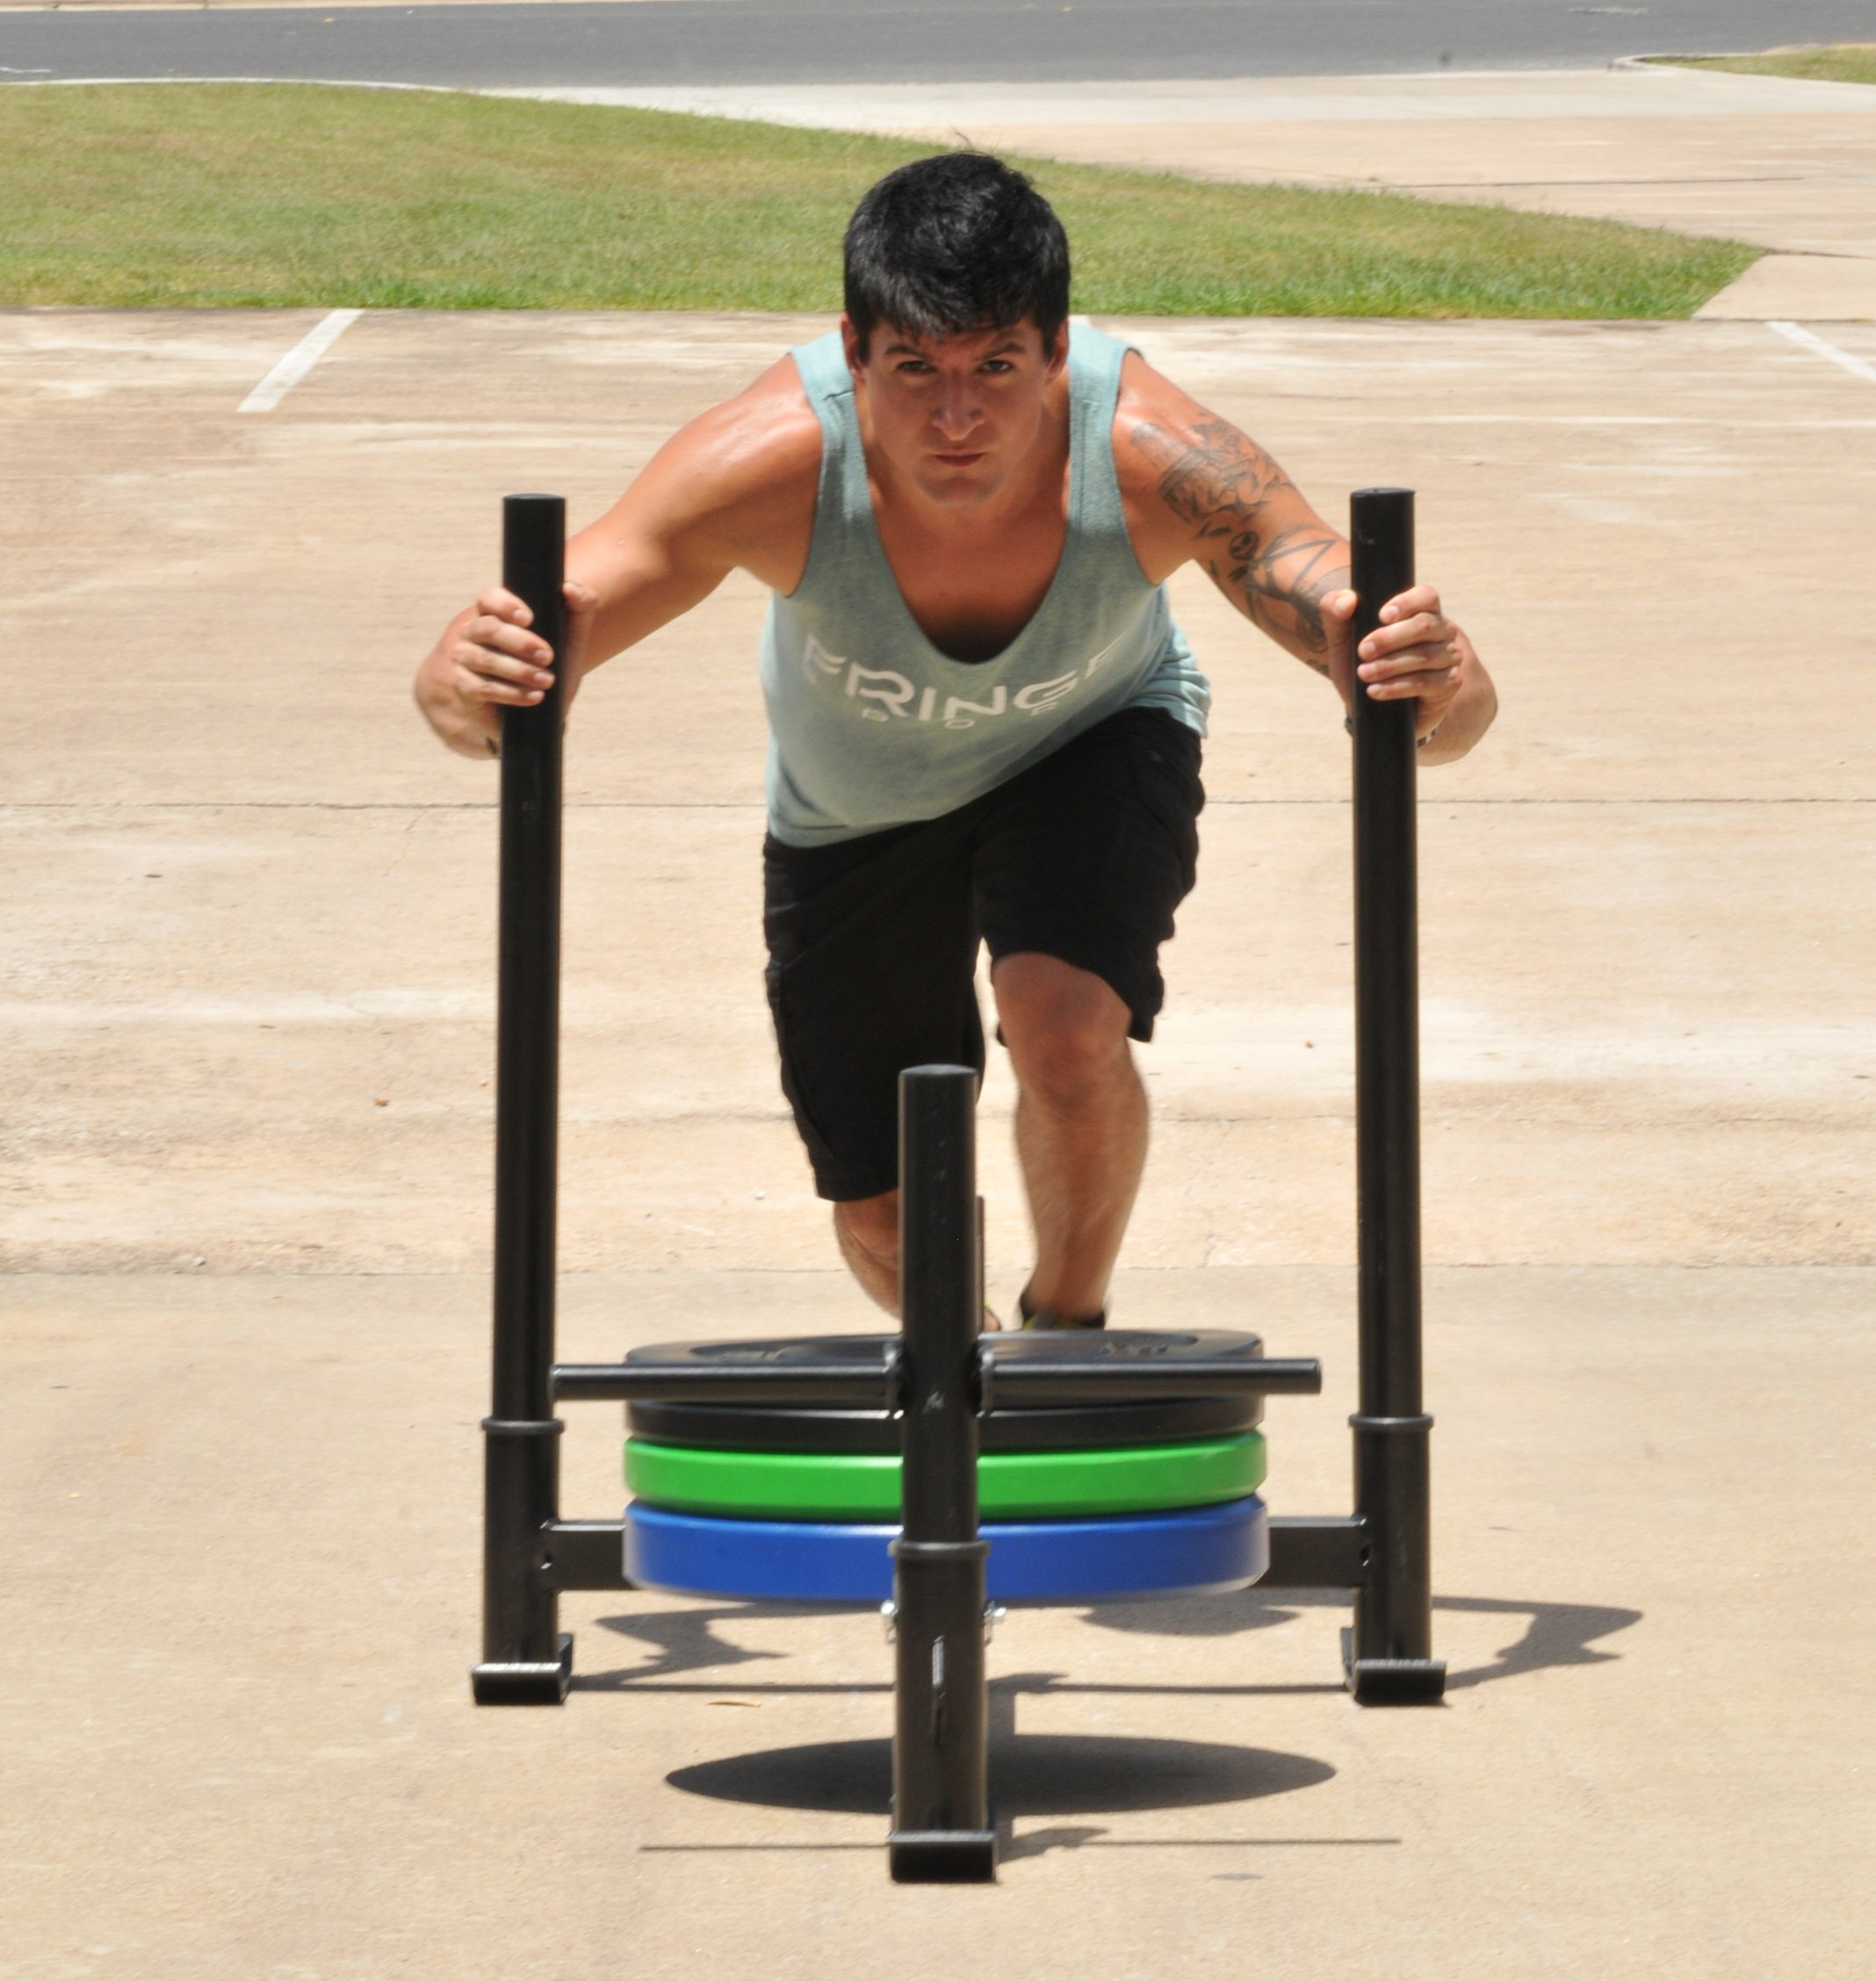 Econ ''Prowler'' Push Sled / Add Plates for More Resistance / CrossFit, Resistance, Strength & Conditioning Equipment by OneFitWonder